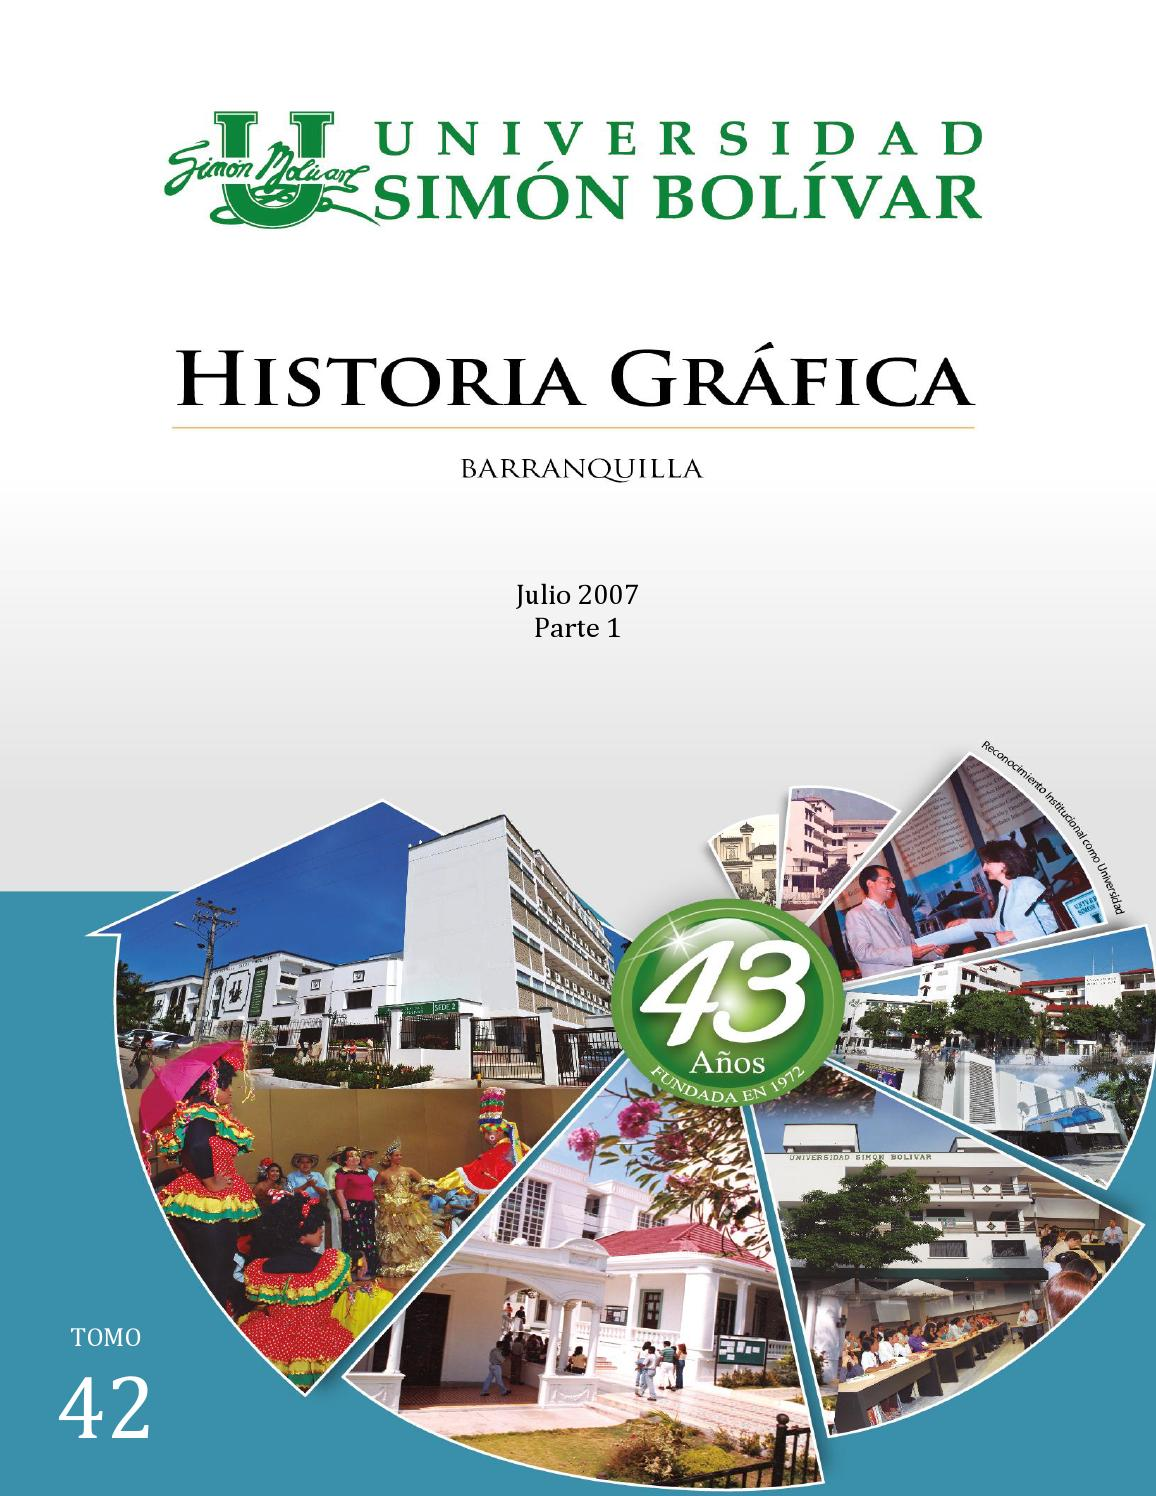 Tomo 42 - Parte 1 by UNIVERSIDAD SIMON BOLIVAR - issuu